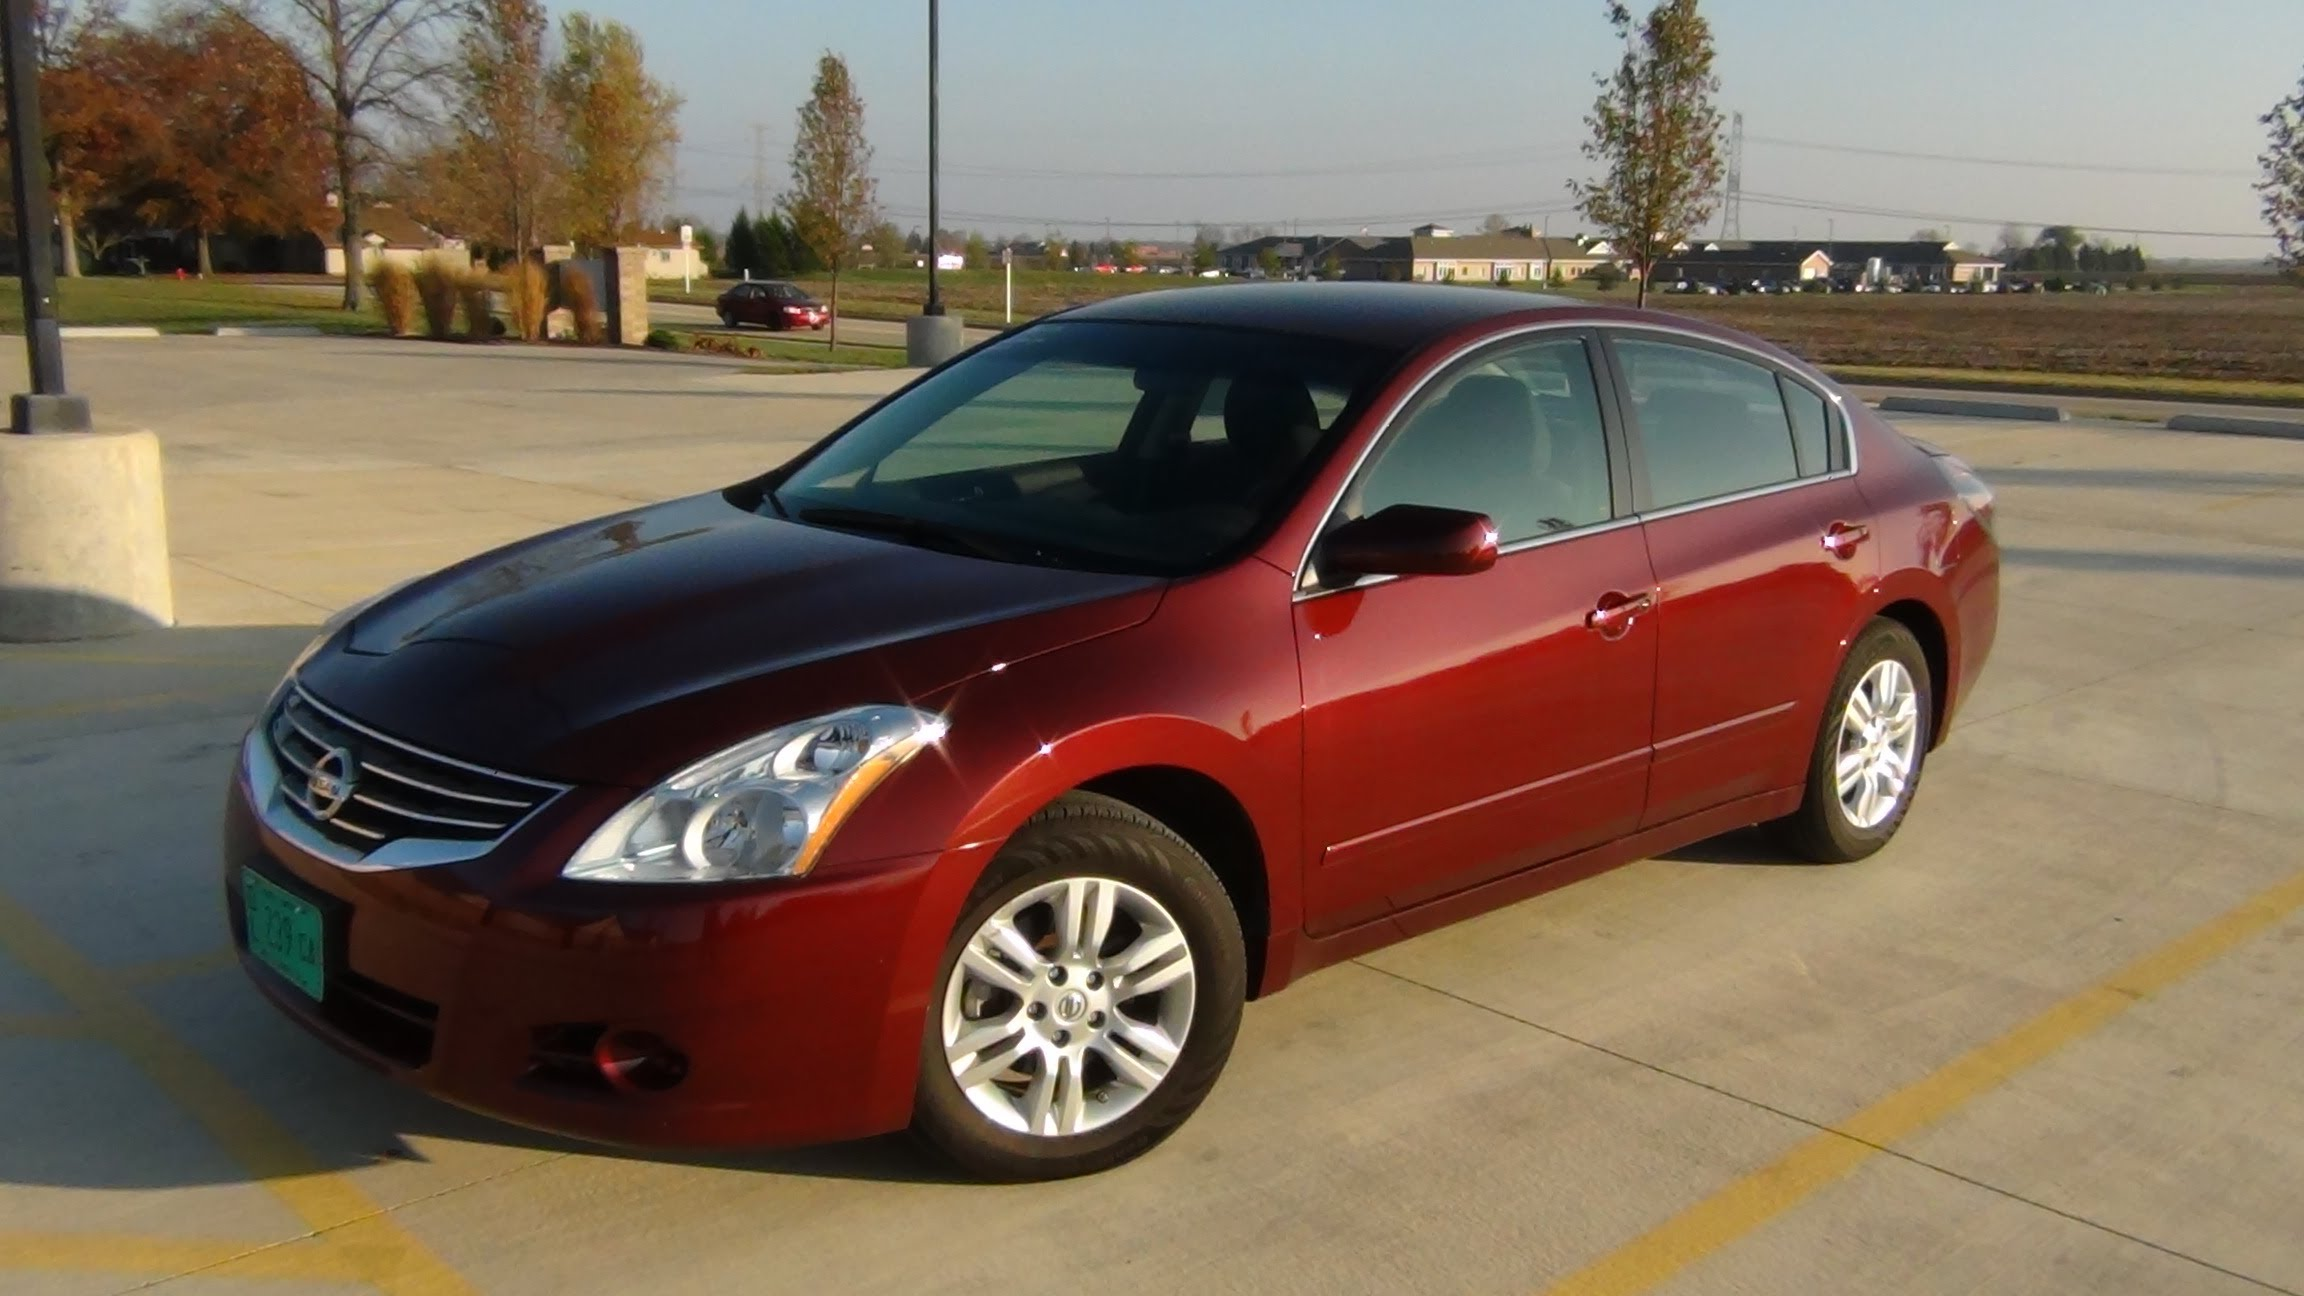 2012 Nissan Altima Red Used Car And Auto Parts Sale In